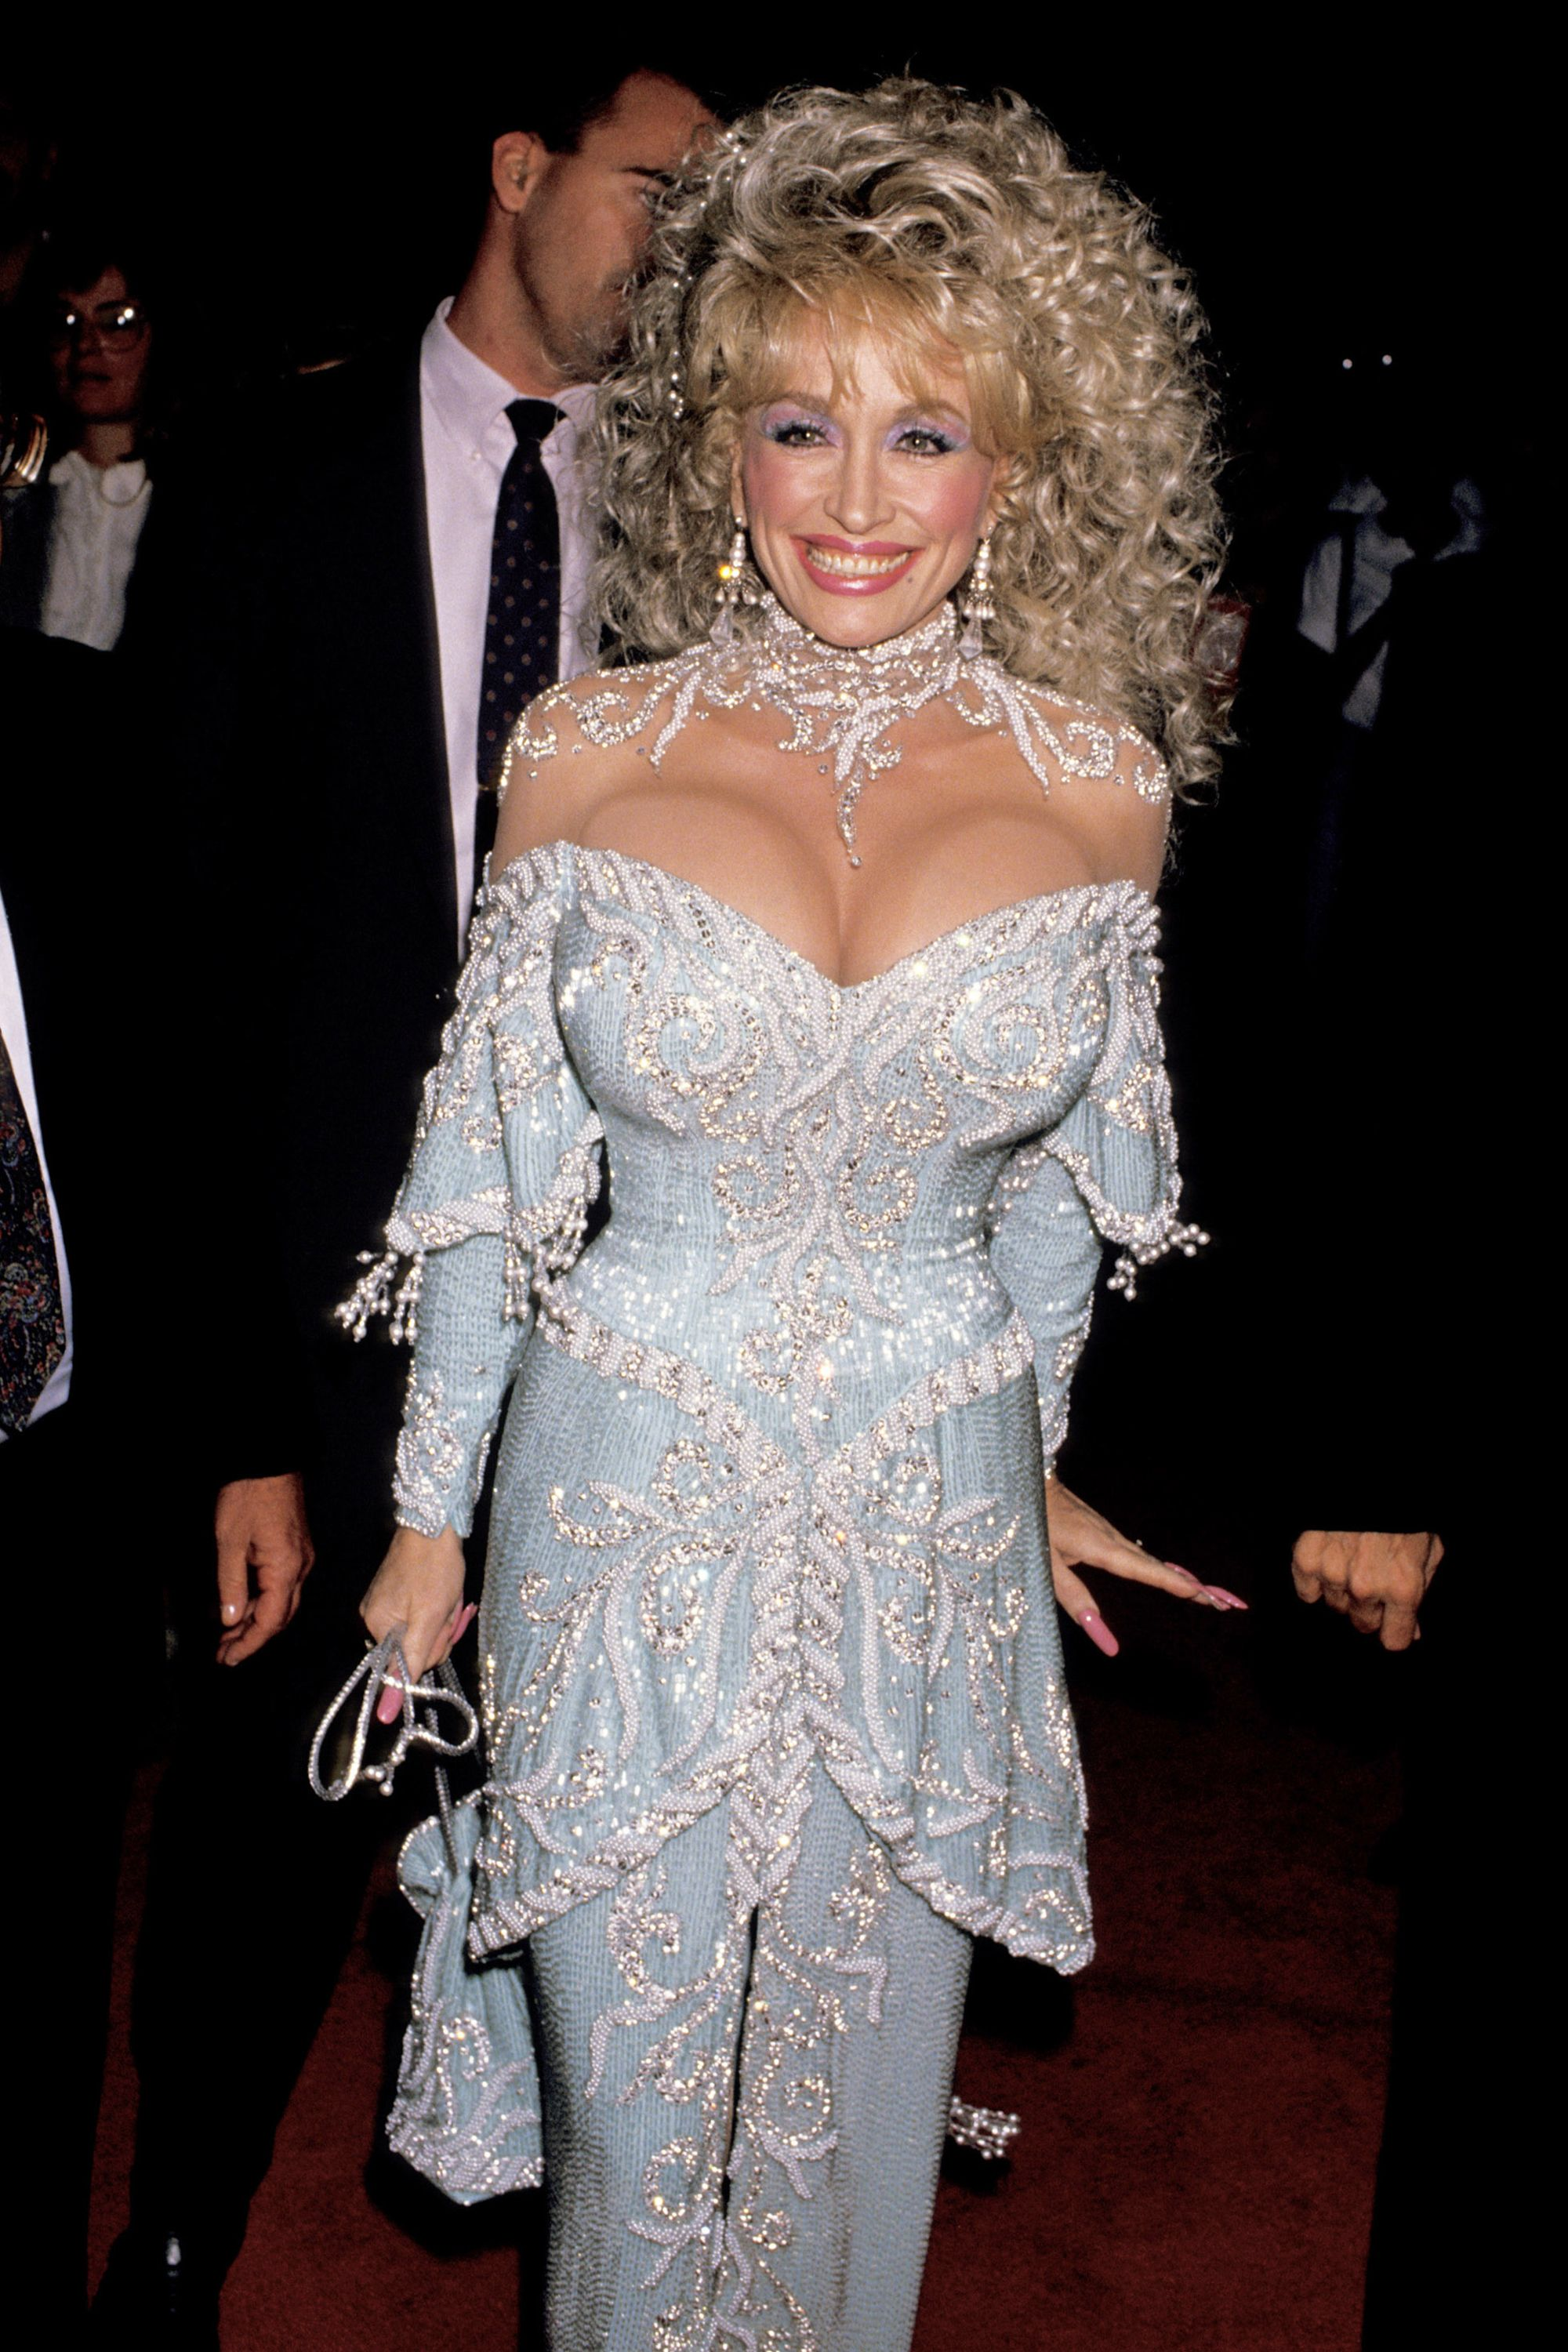 hbz-dolly-parton-1989-gettyimages-107283